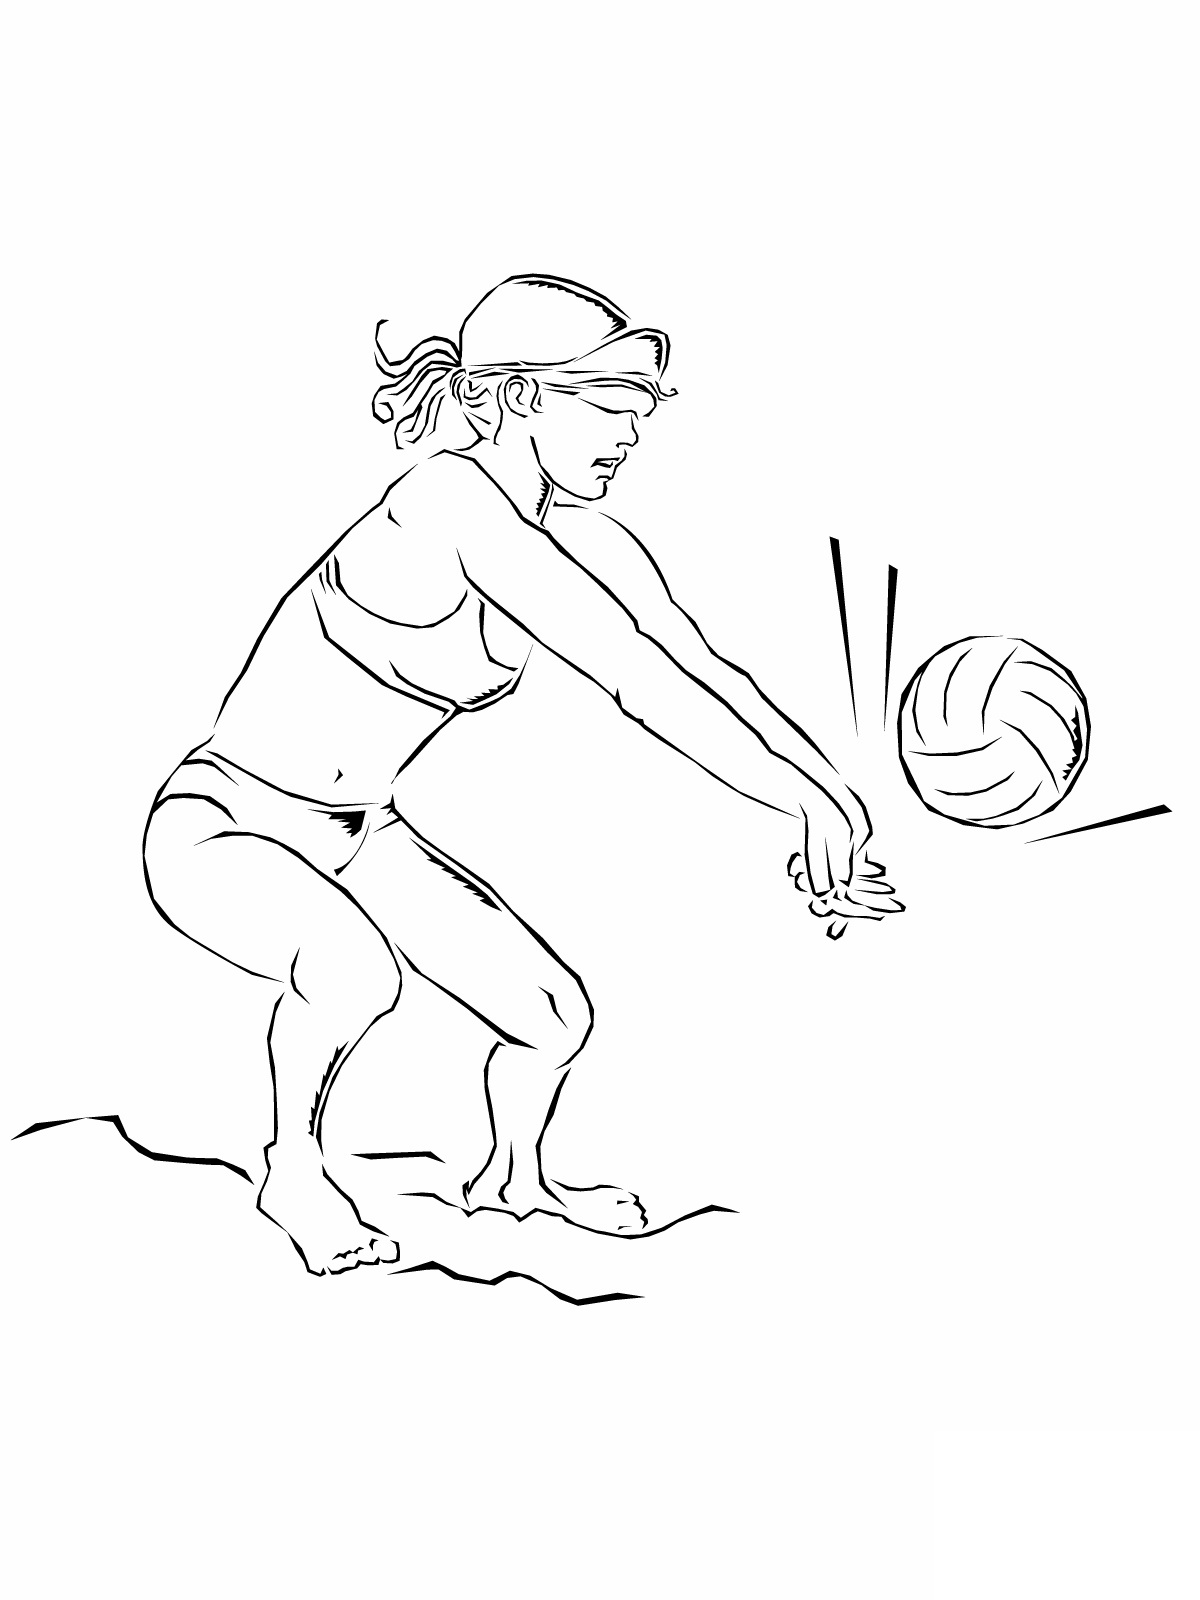 Image #17663 - Coloriage volleyball gratuit